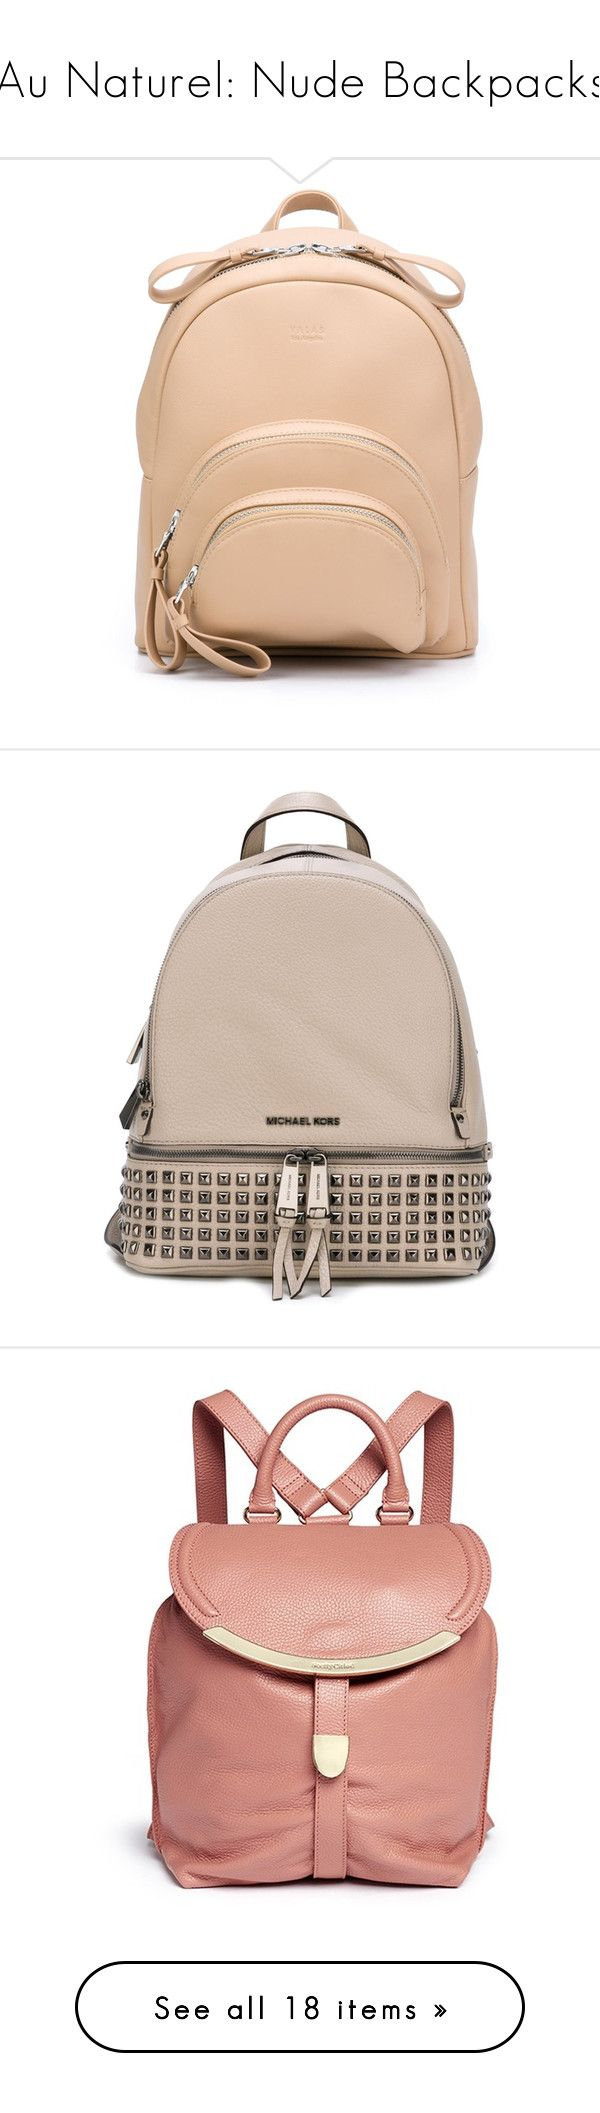 """""""Au Naturel: Nude Backpacks"""" by polyvore-editorial ❤ liked on Polyvore featuring nudebackpacks, bags, backpacks, day pack backpack, quilted leather backpack, flat backpack, zip bag, quilted bags, red leather backpack and leather daypack"""